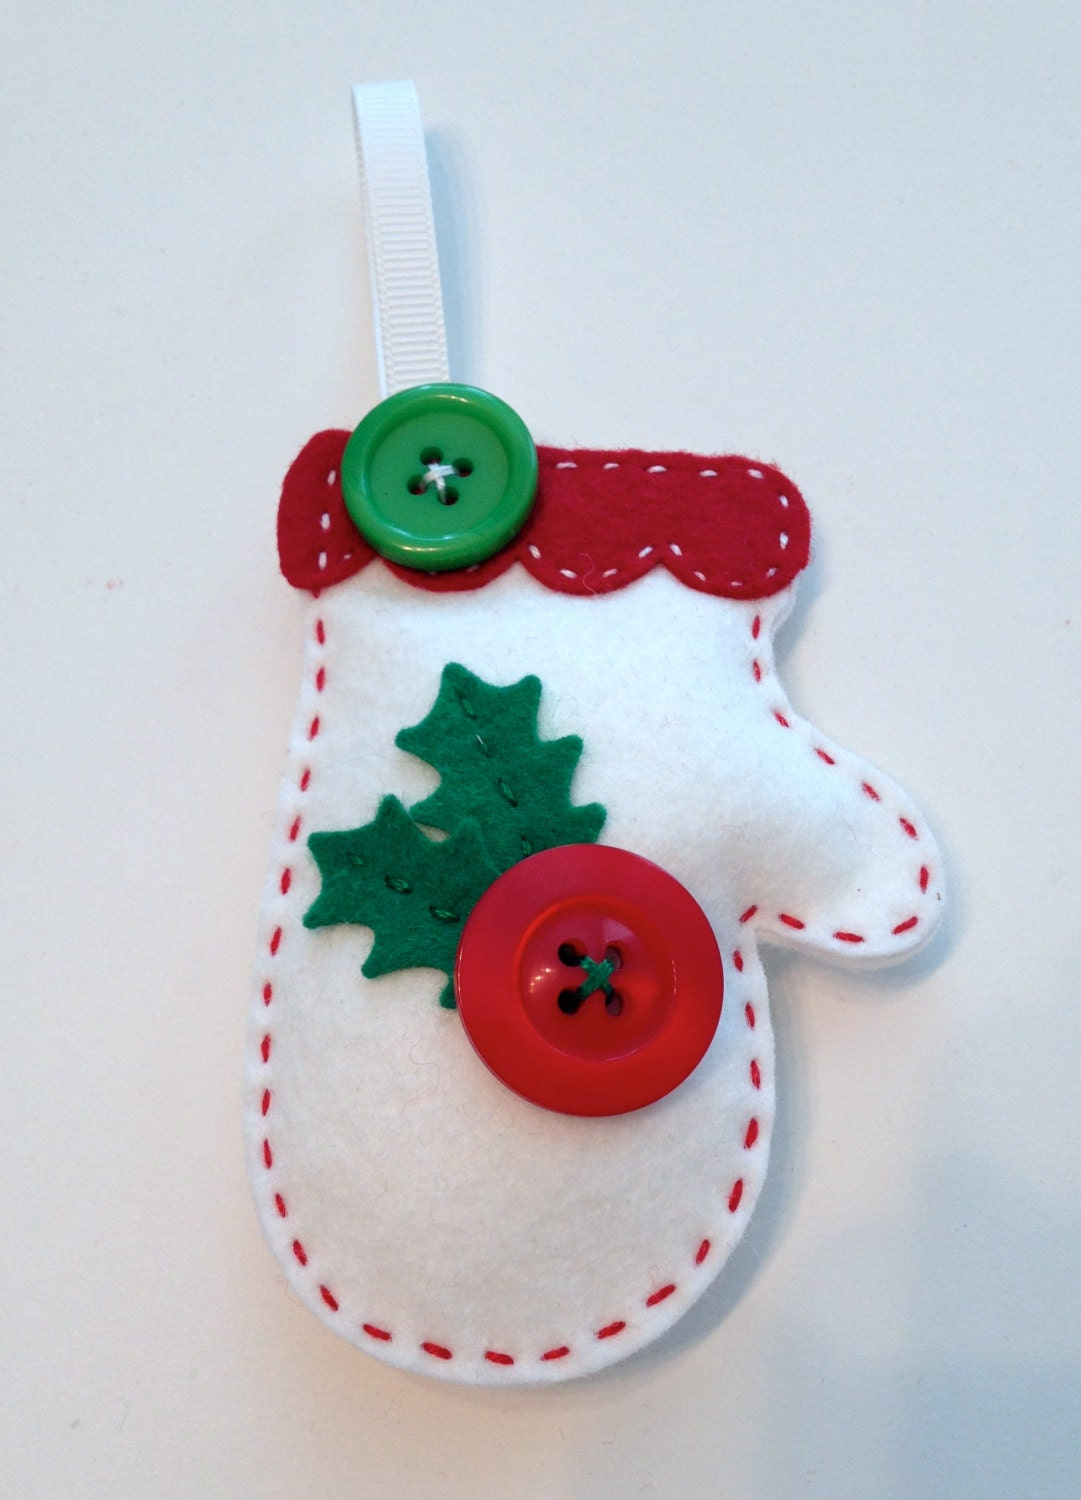 Diy Christmas Ornaments Etsy : Diy felt holly mitten ornament kit by polkadotcreek on etsy